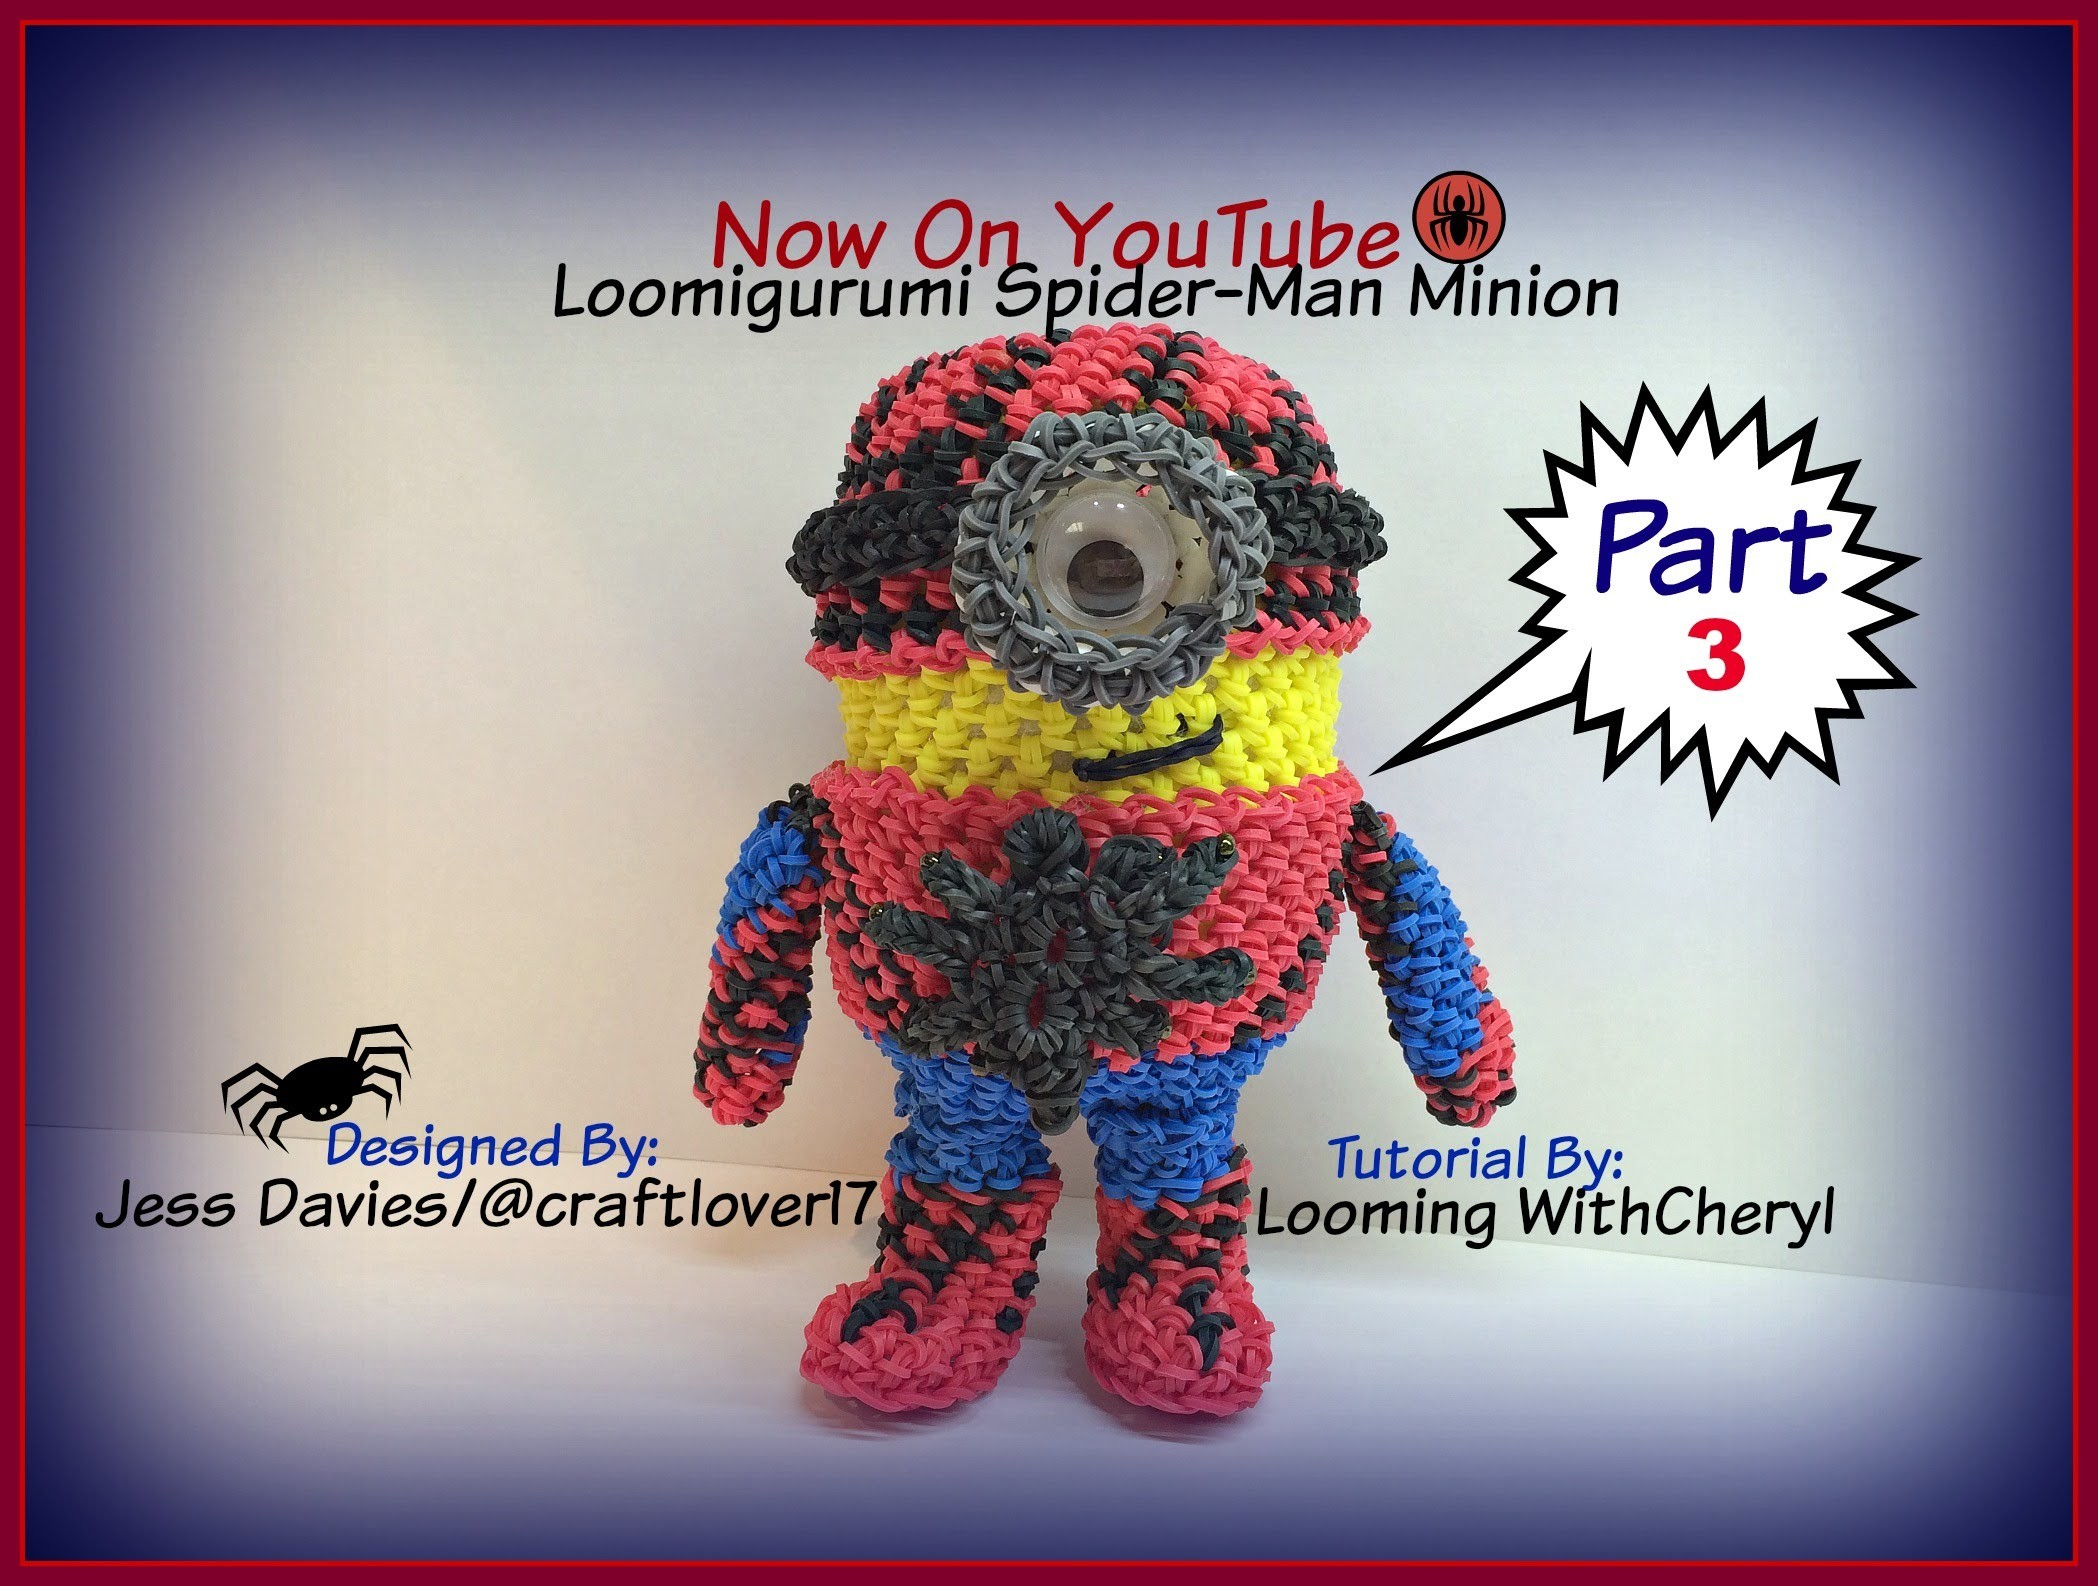 Rainbow Loom Spider-Man Minion Part 3 of 3 -Loomigurumi Amigurumi Hook Only Spiderman